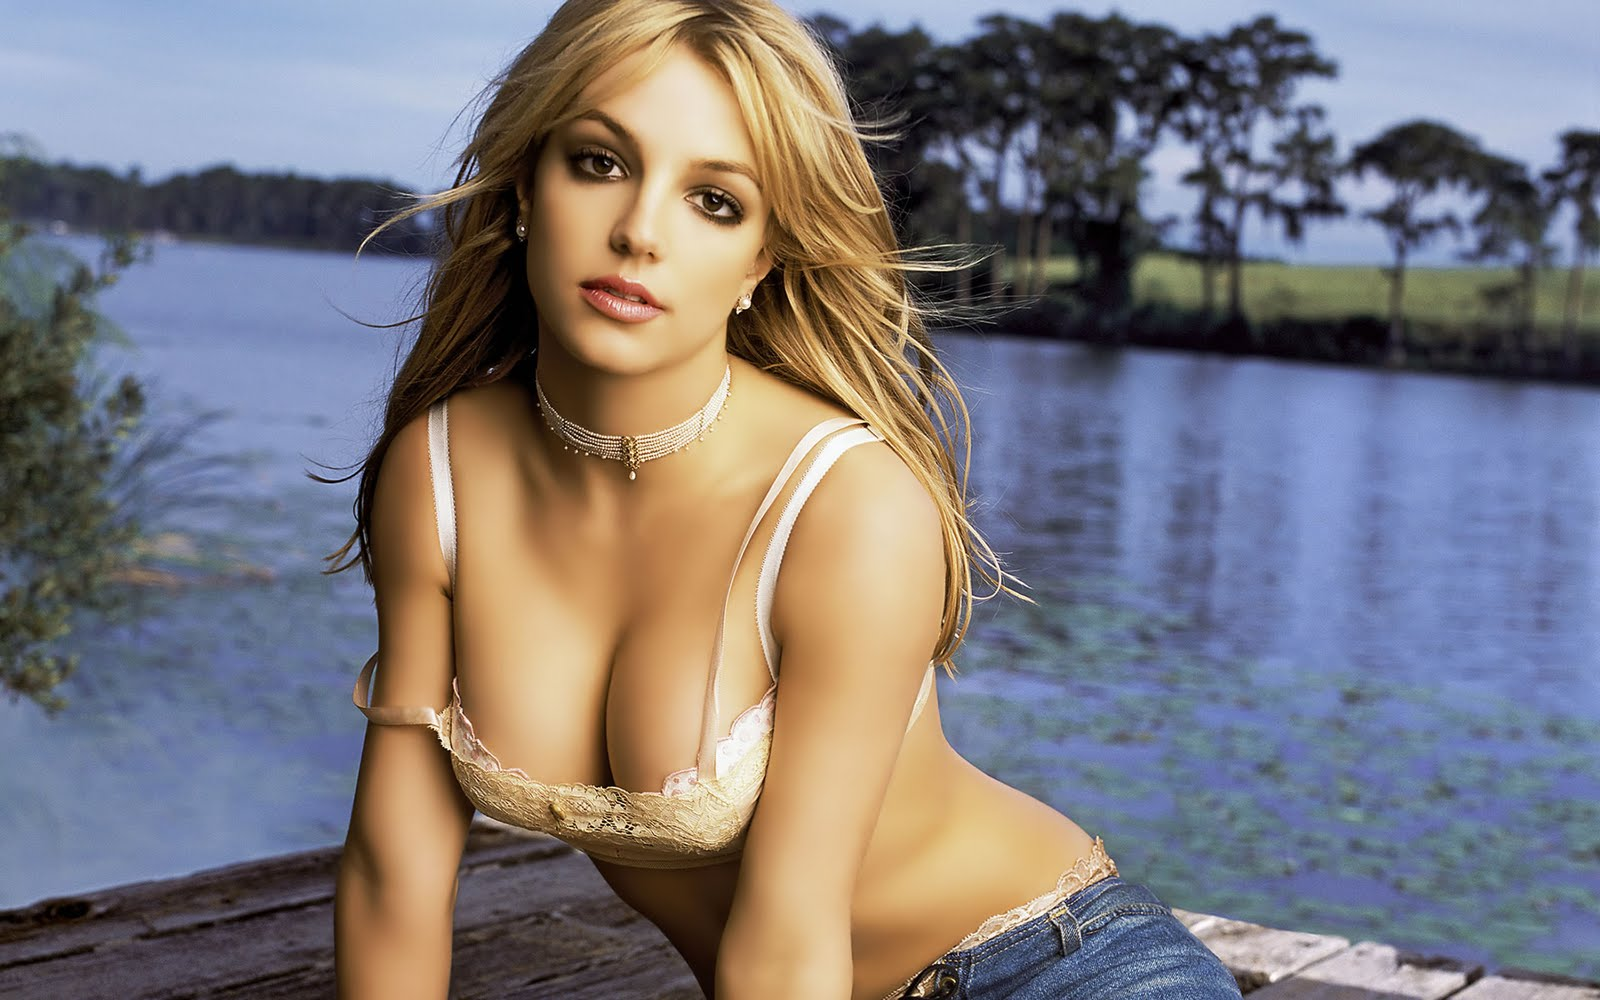 http://1.bp.blogspot.com/-jxmNUbUHKC4/TdRonjdxt6I/AAAAAAAAADY/1x3YOOVO330/s1600/1The-best-top-desktop-britney-spears-wallpapers-Hottest+Britney+Spears+HD+Desktop+wallpapers-hot-nude-sexy-topless-britney-spears-hd-wallpapers-global-top-actress-nude-sexy-big-ass-big-boobs-actress-model-.jpg